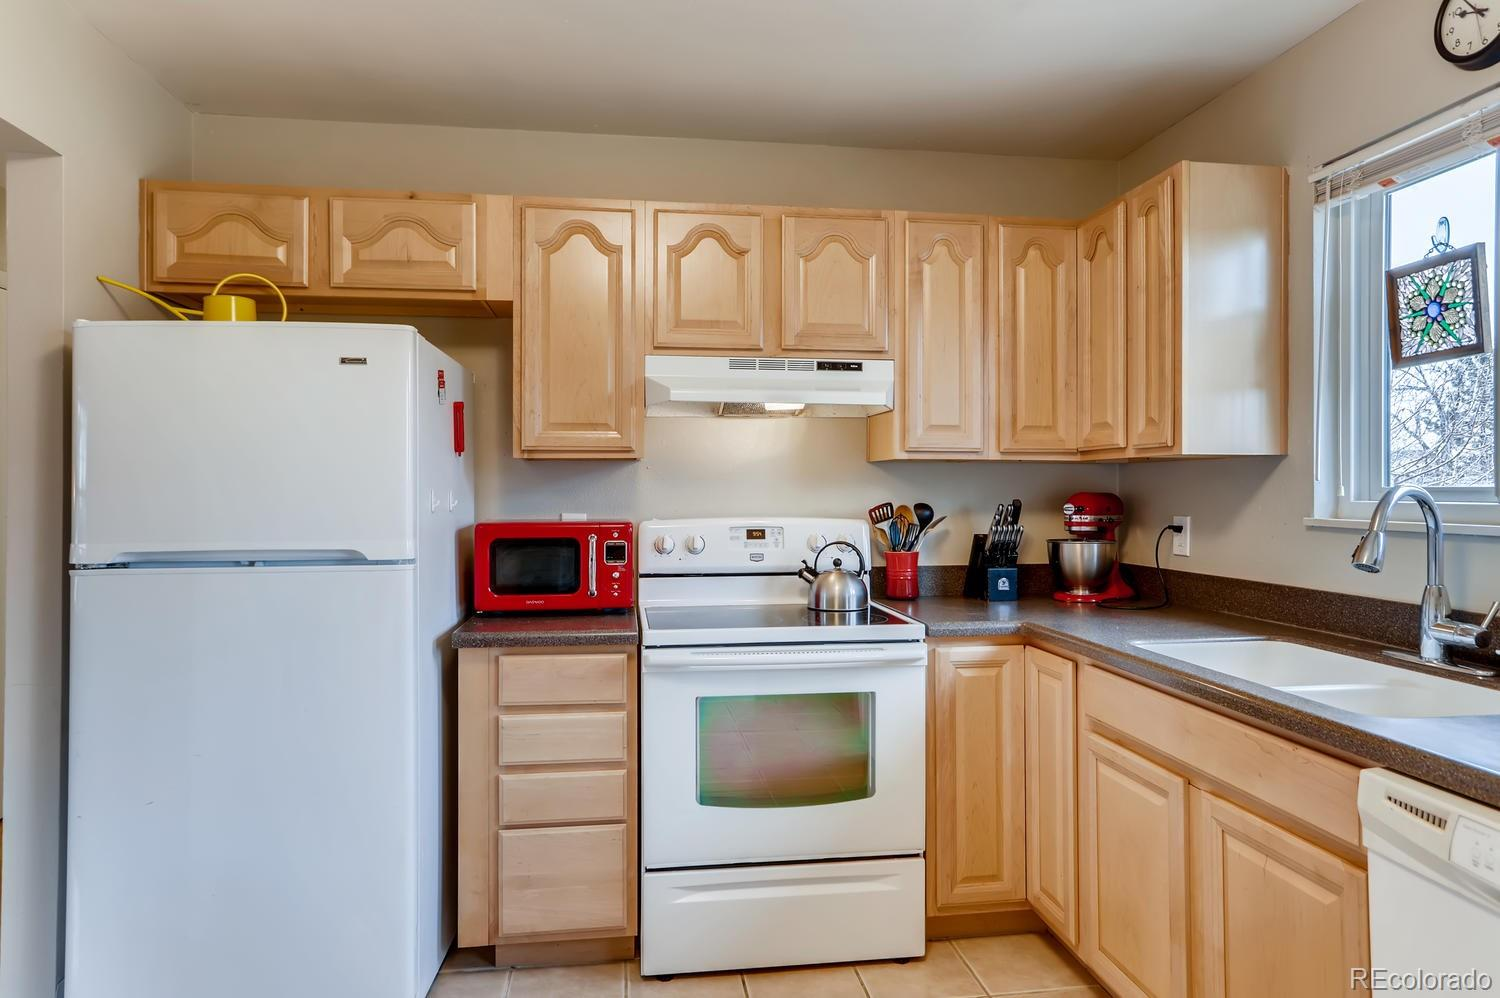 MLS# 6804031 - 8 - 10912 W 107th Place, Westminster, CO 80021